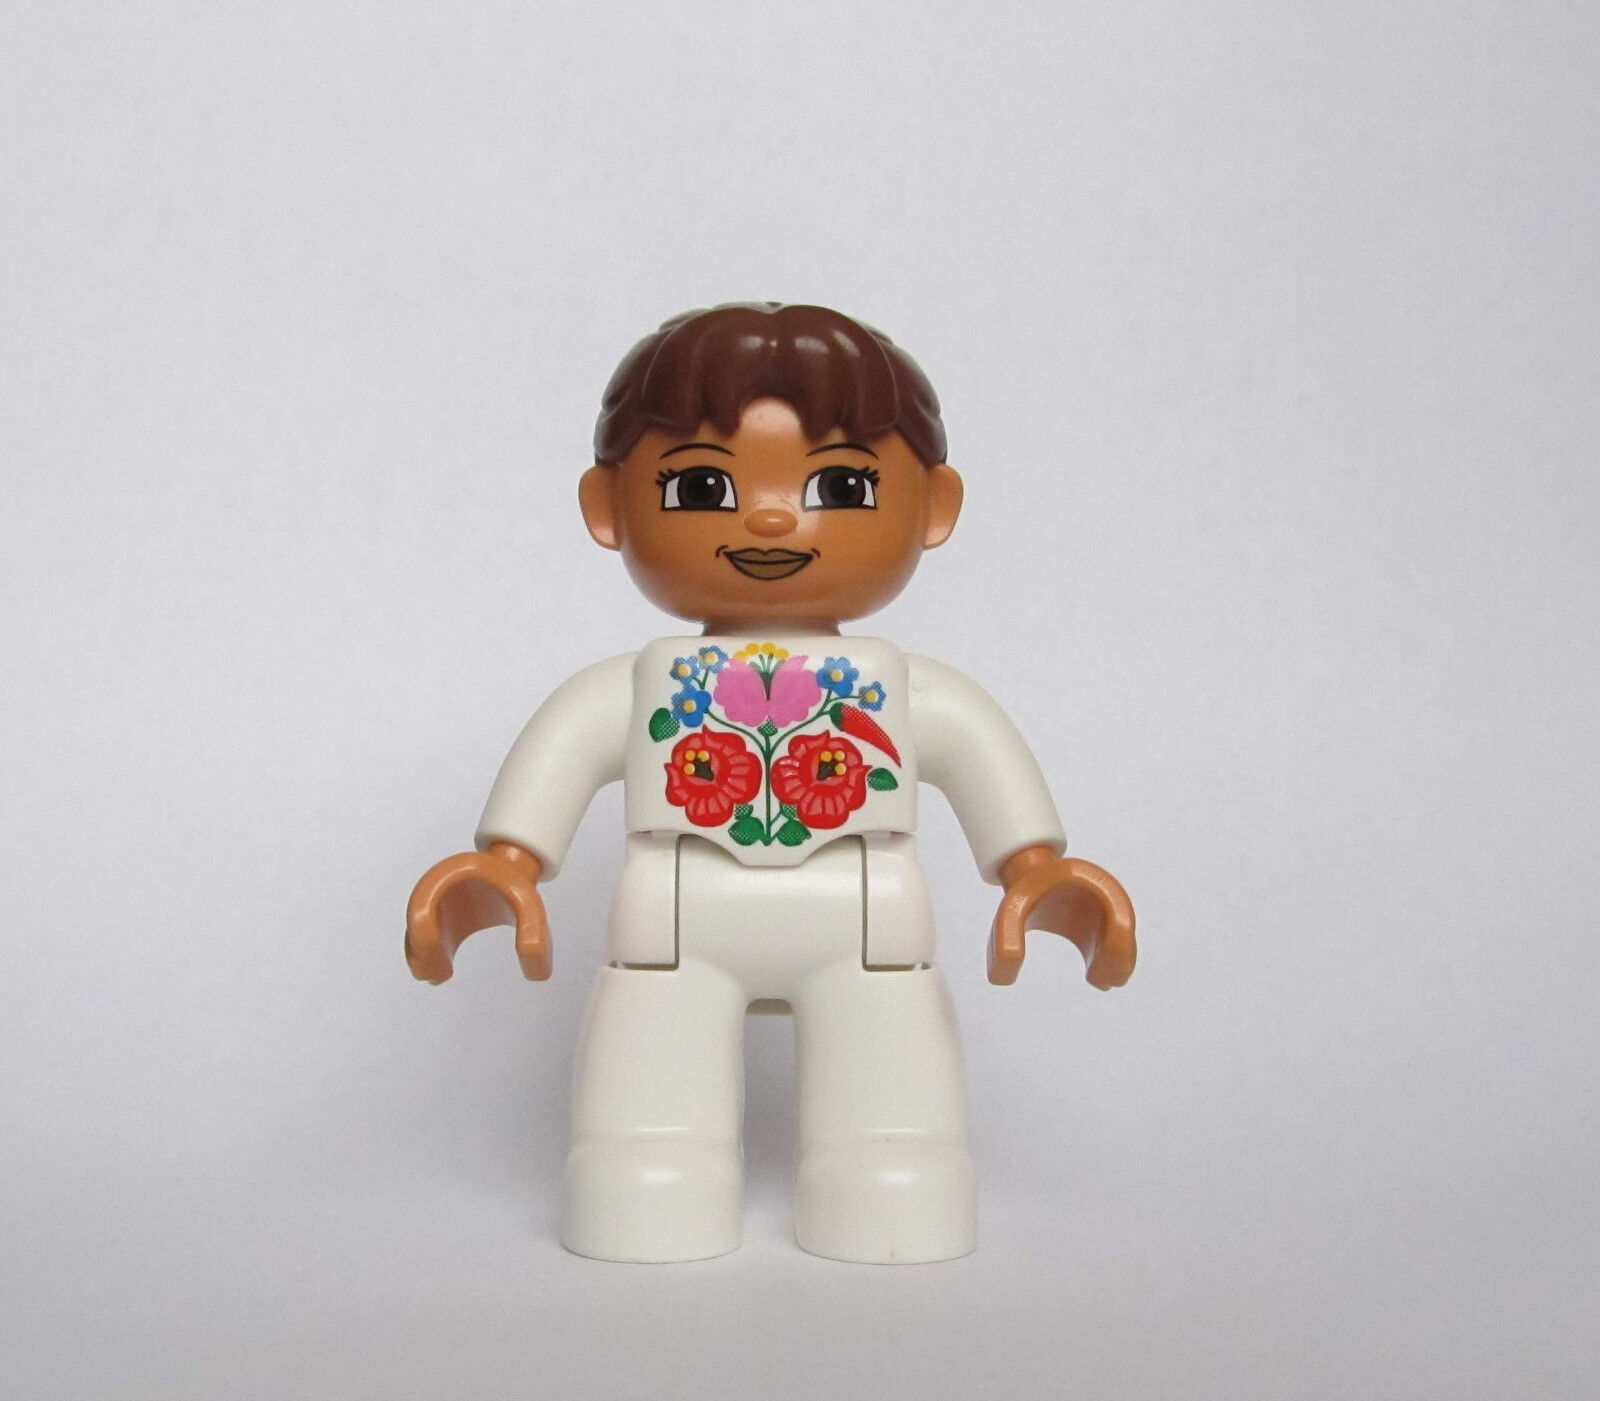 Lego Duplo Figure Exclusive Employee factory Gift Figure Rare